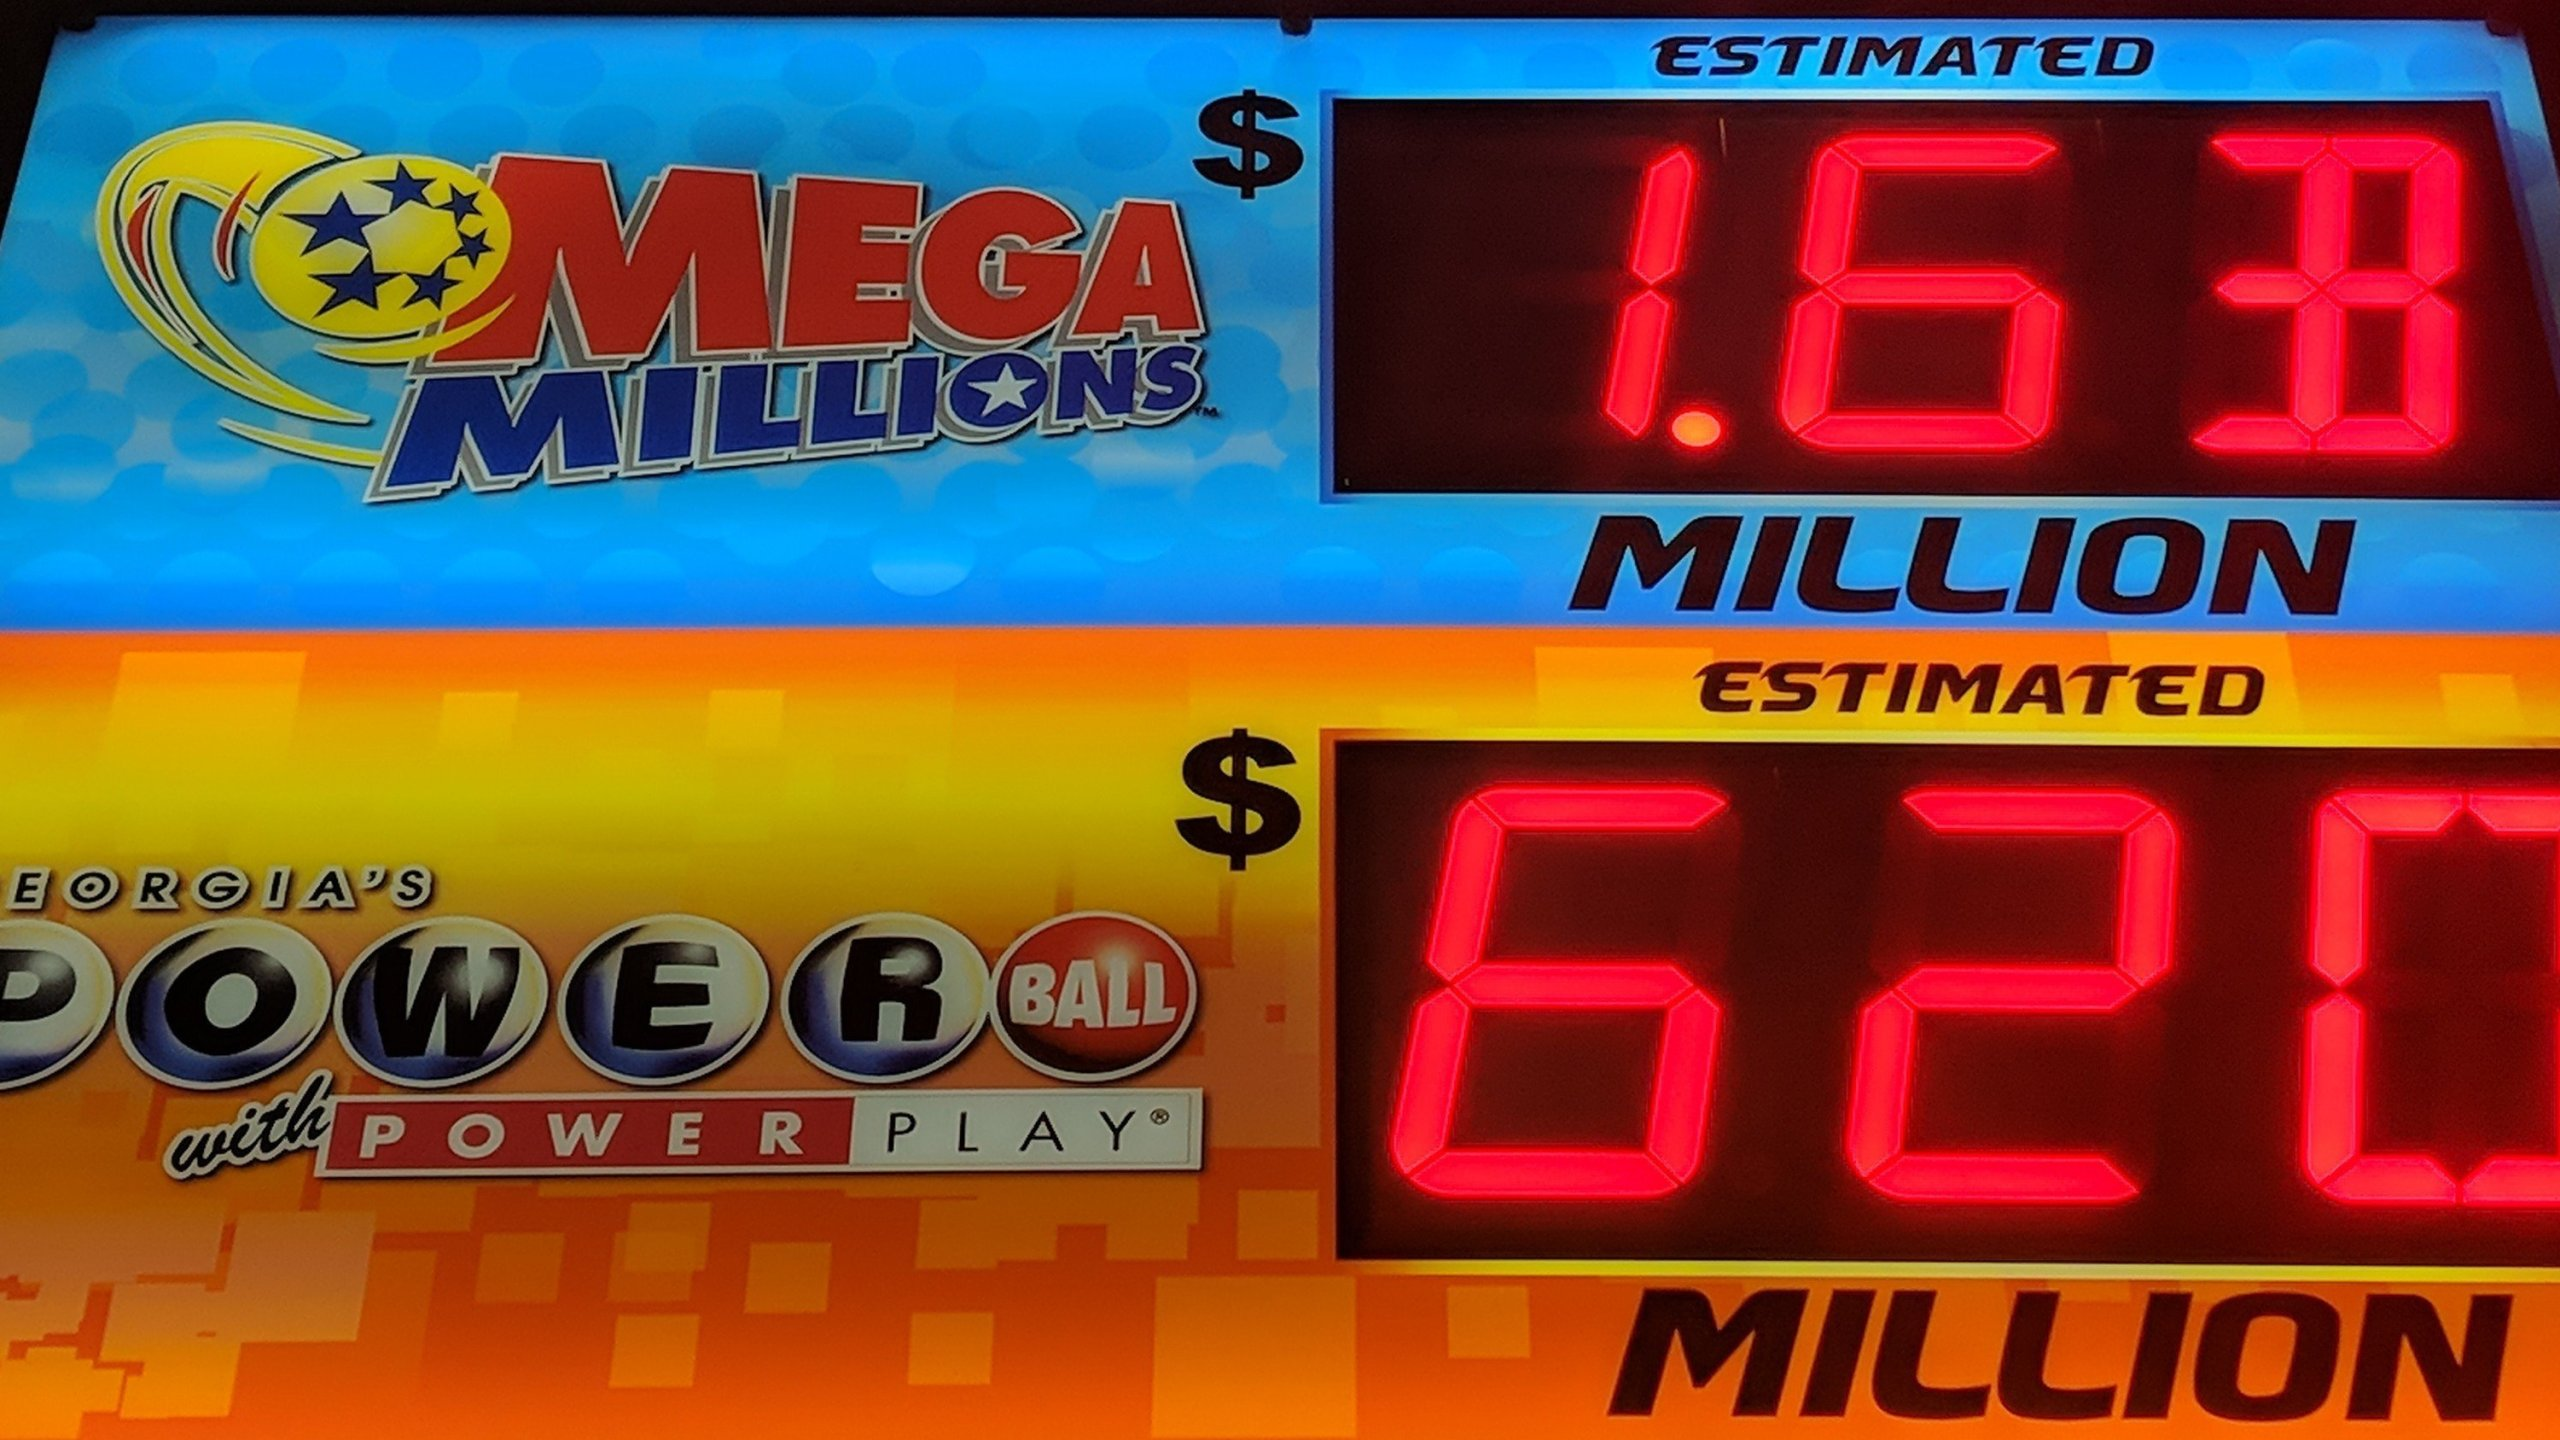 The Mega Millions and Powerball jackpots total a combined amount of more than $2.2 billion as of the morning of Oct. 23, 2018. (Credit: CNN)